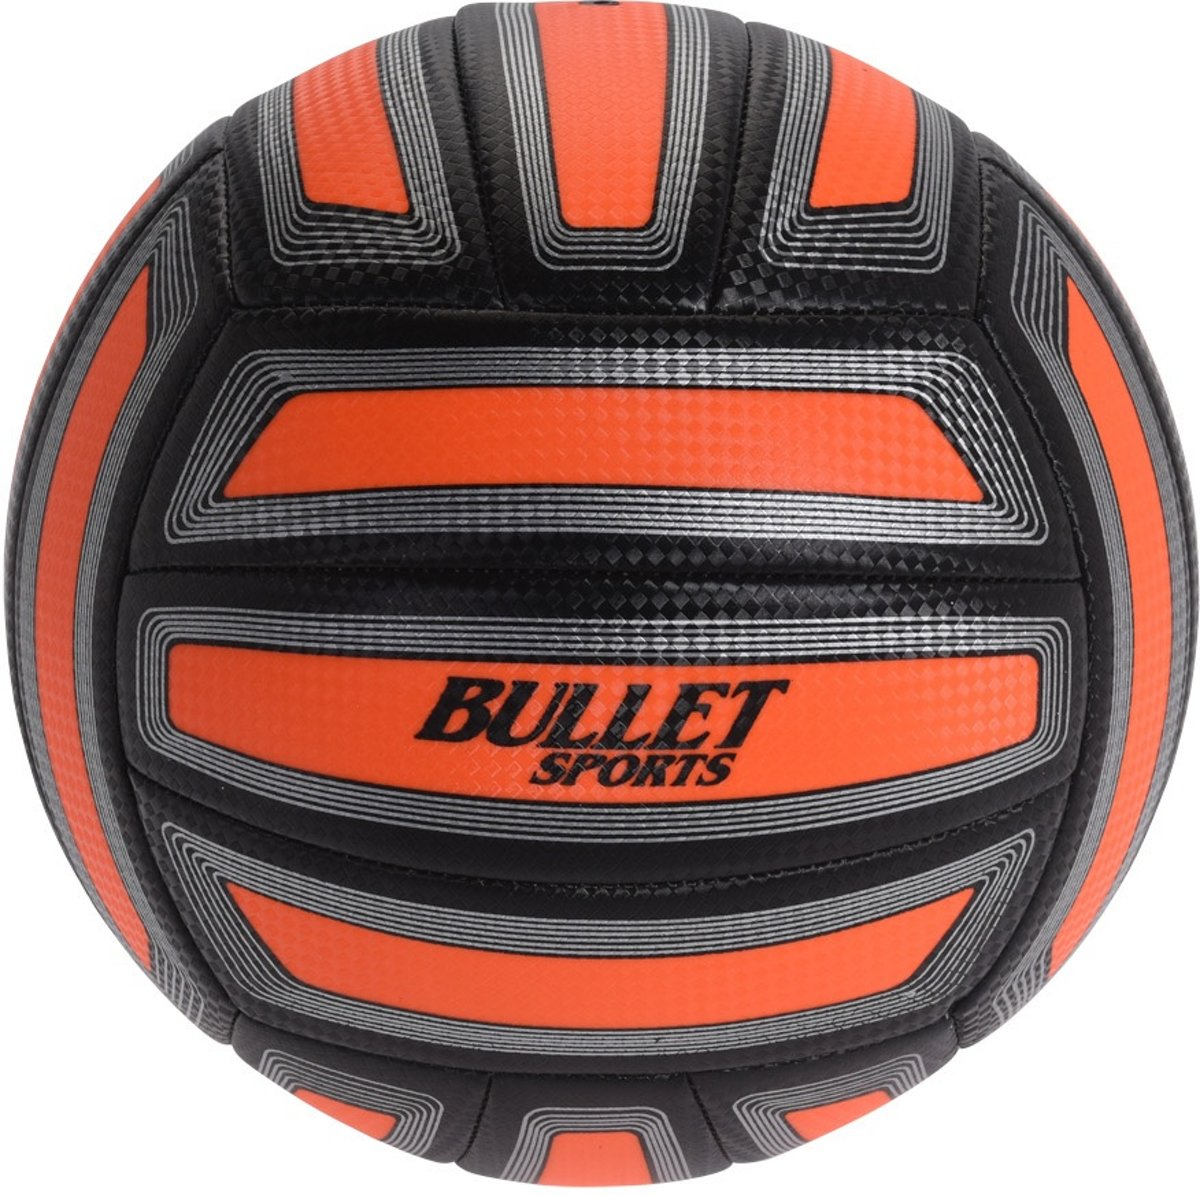 Free And Easy Bullet Sport Volleybal Oranje Maat 5 kopen